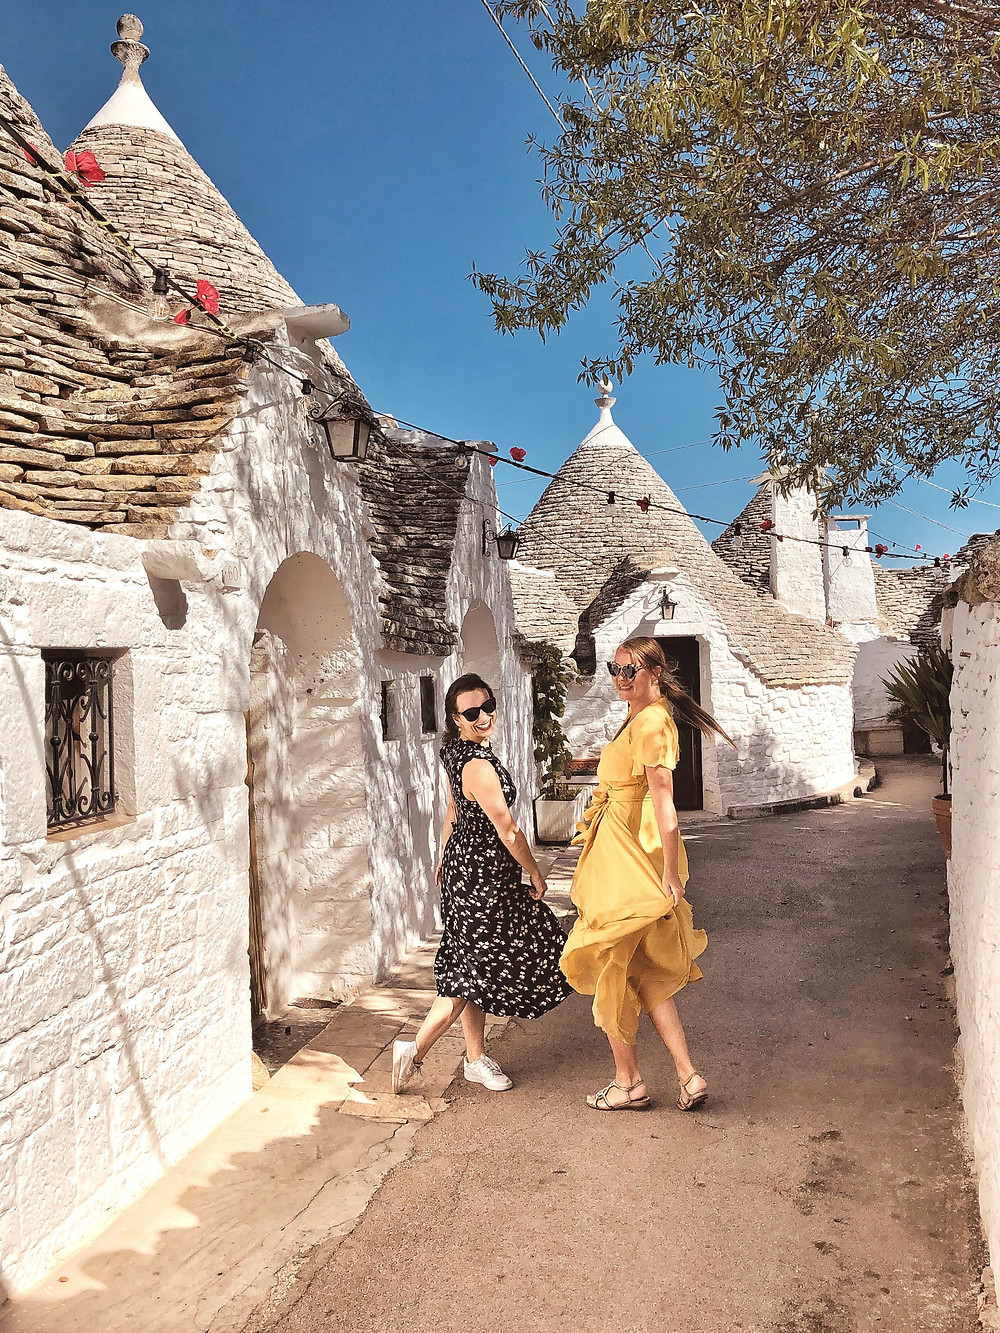 Dancing in the alleys of Alberobello-Puglia Italy